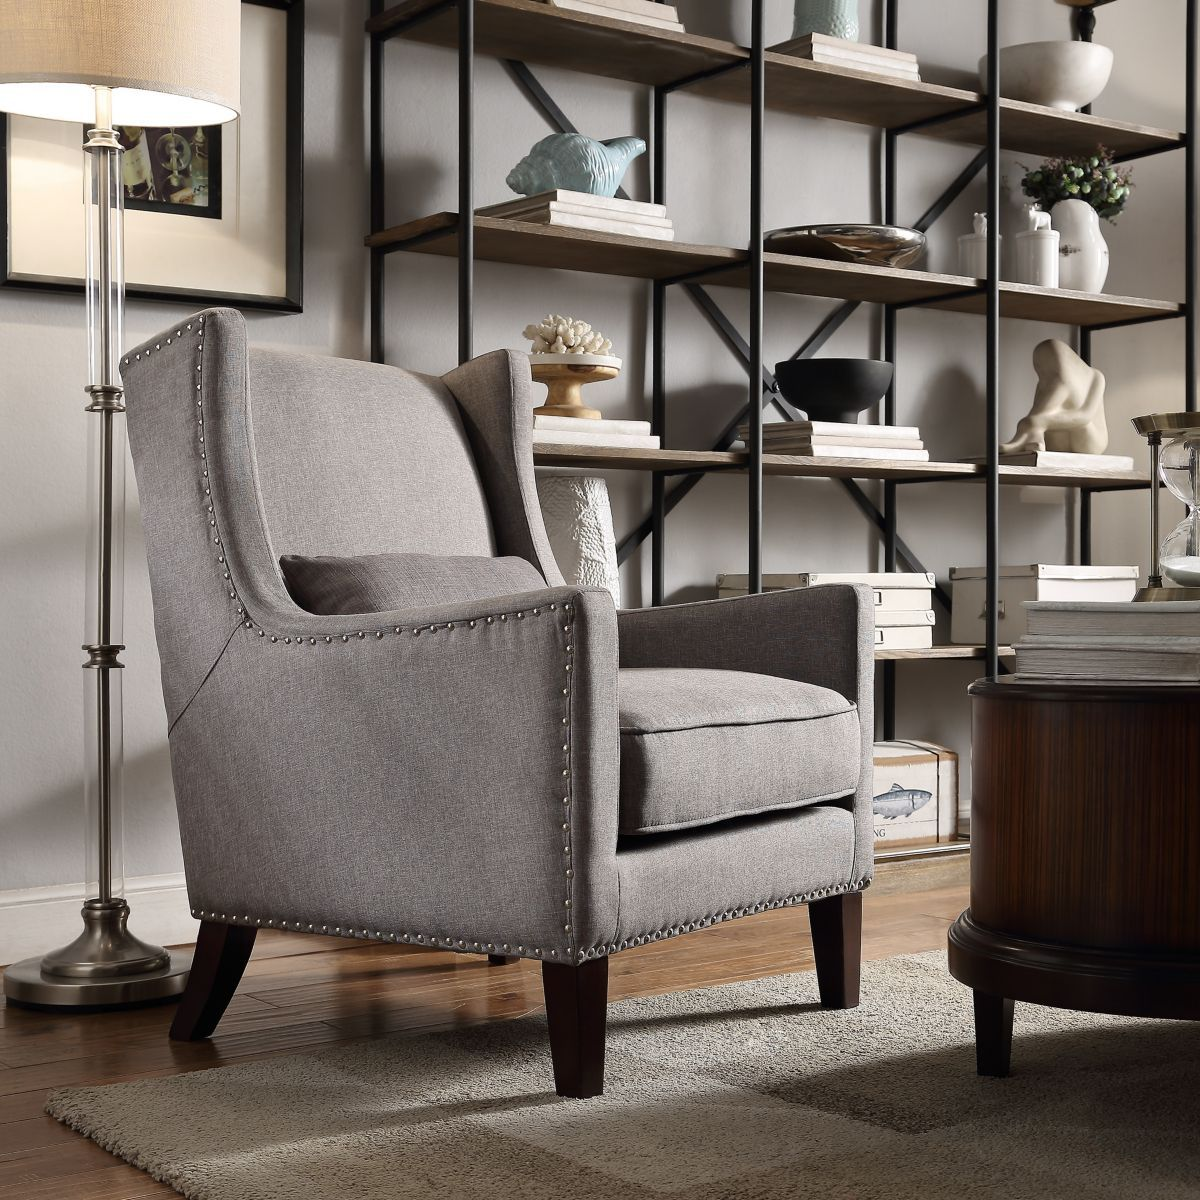 Linen Accent Chairs, Furniture